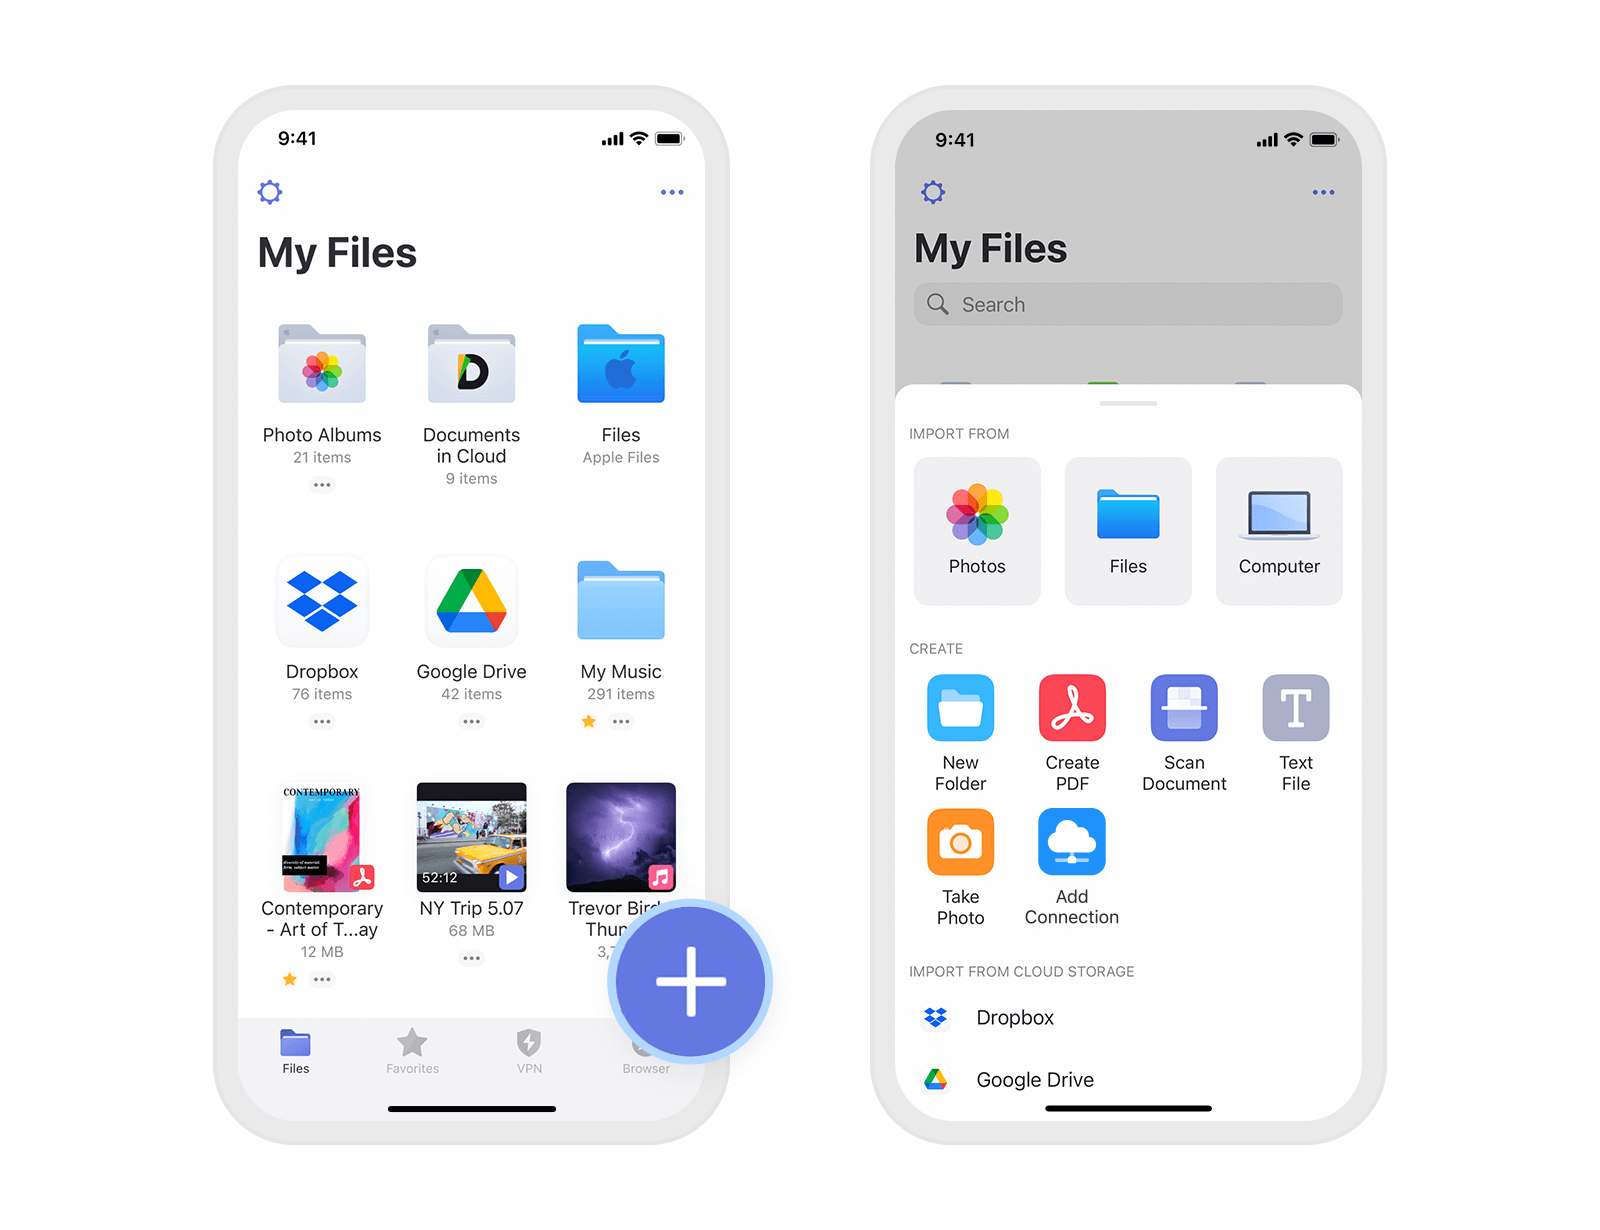 How to Add New Files on iPhone